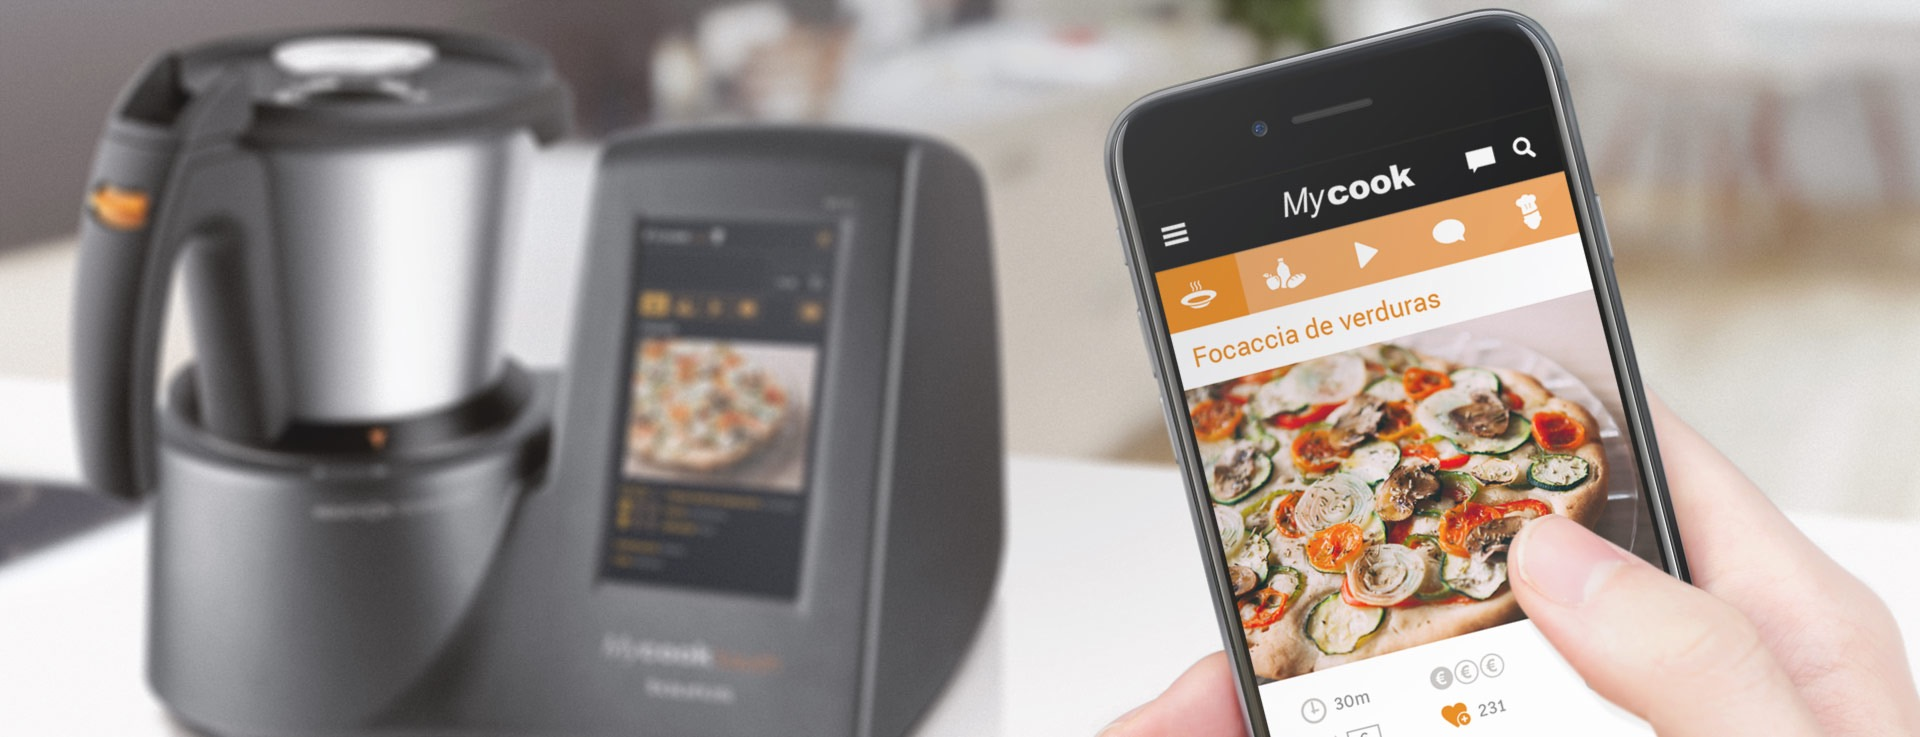 mycook touch mobile app